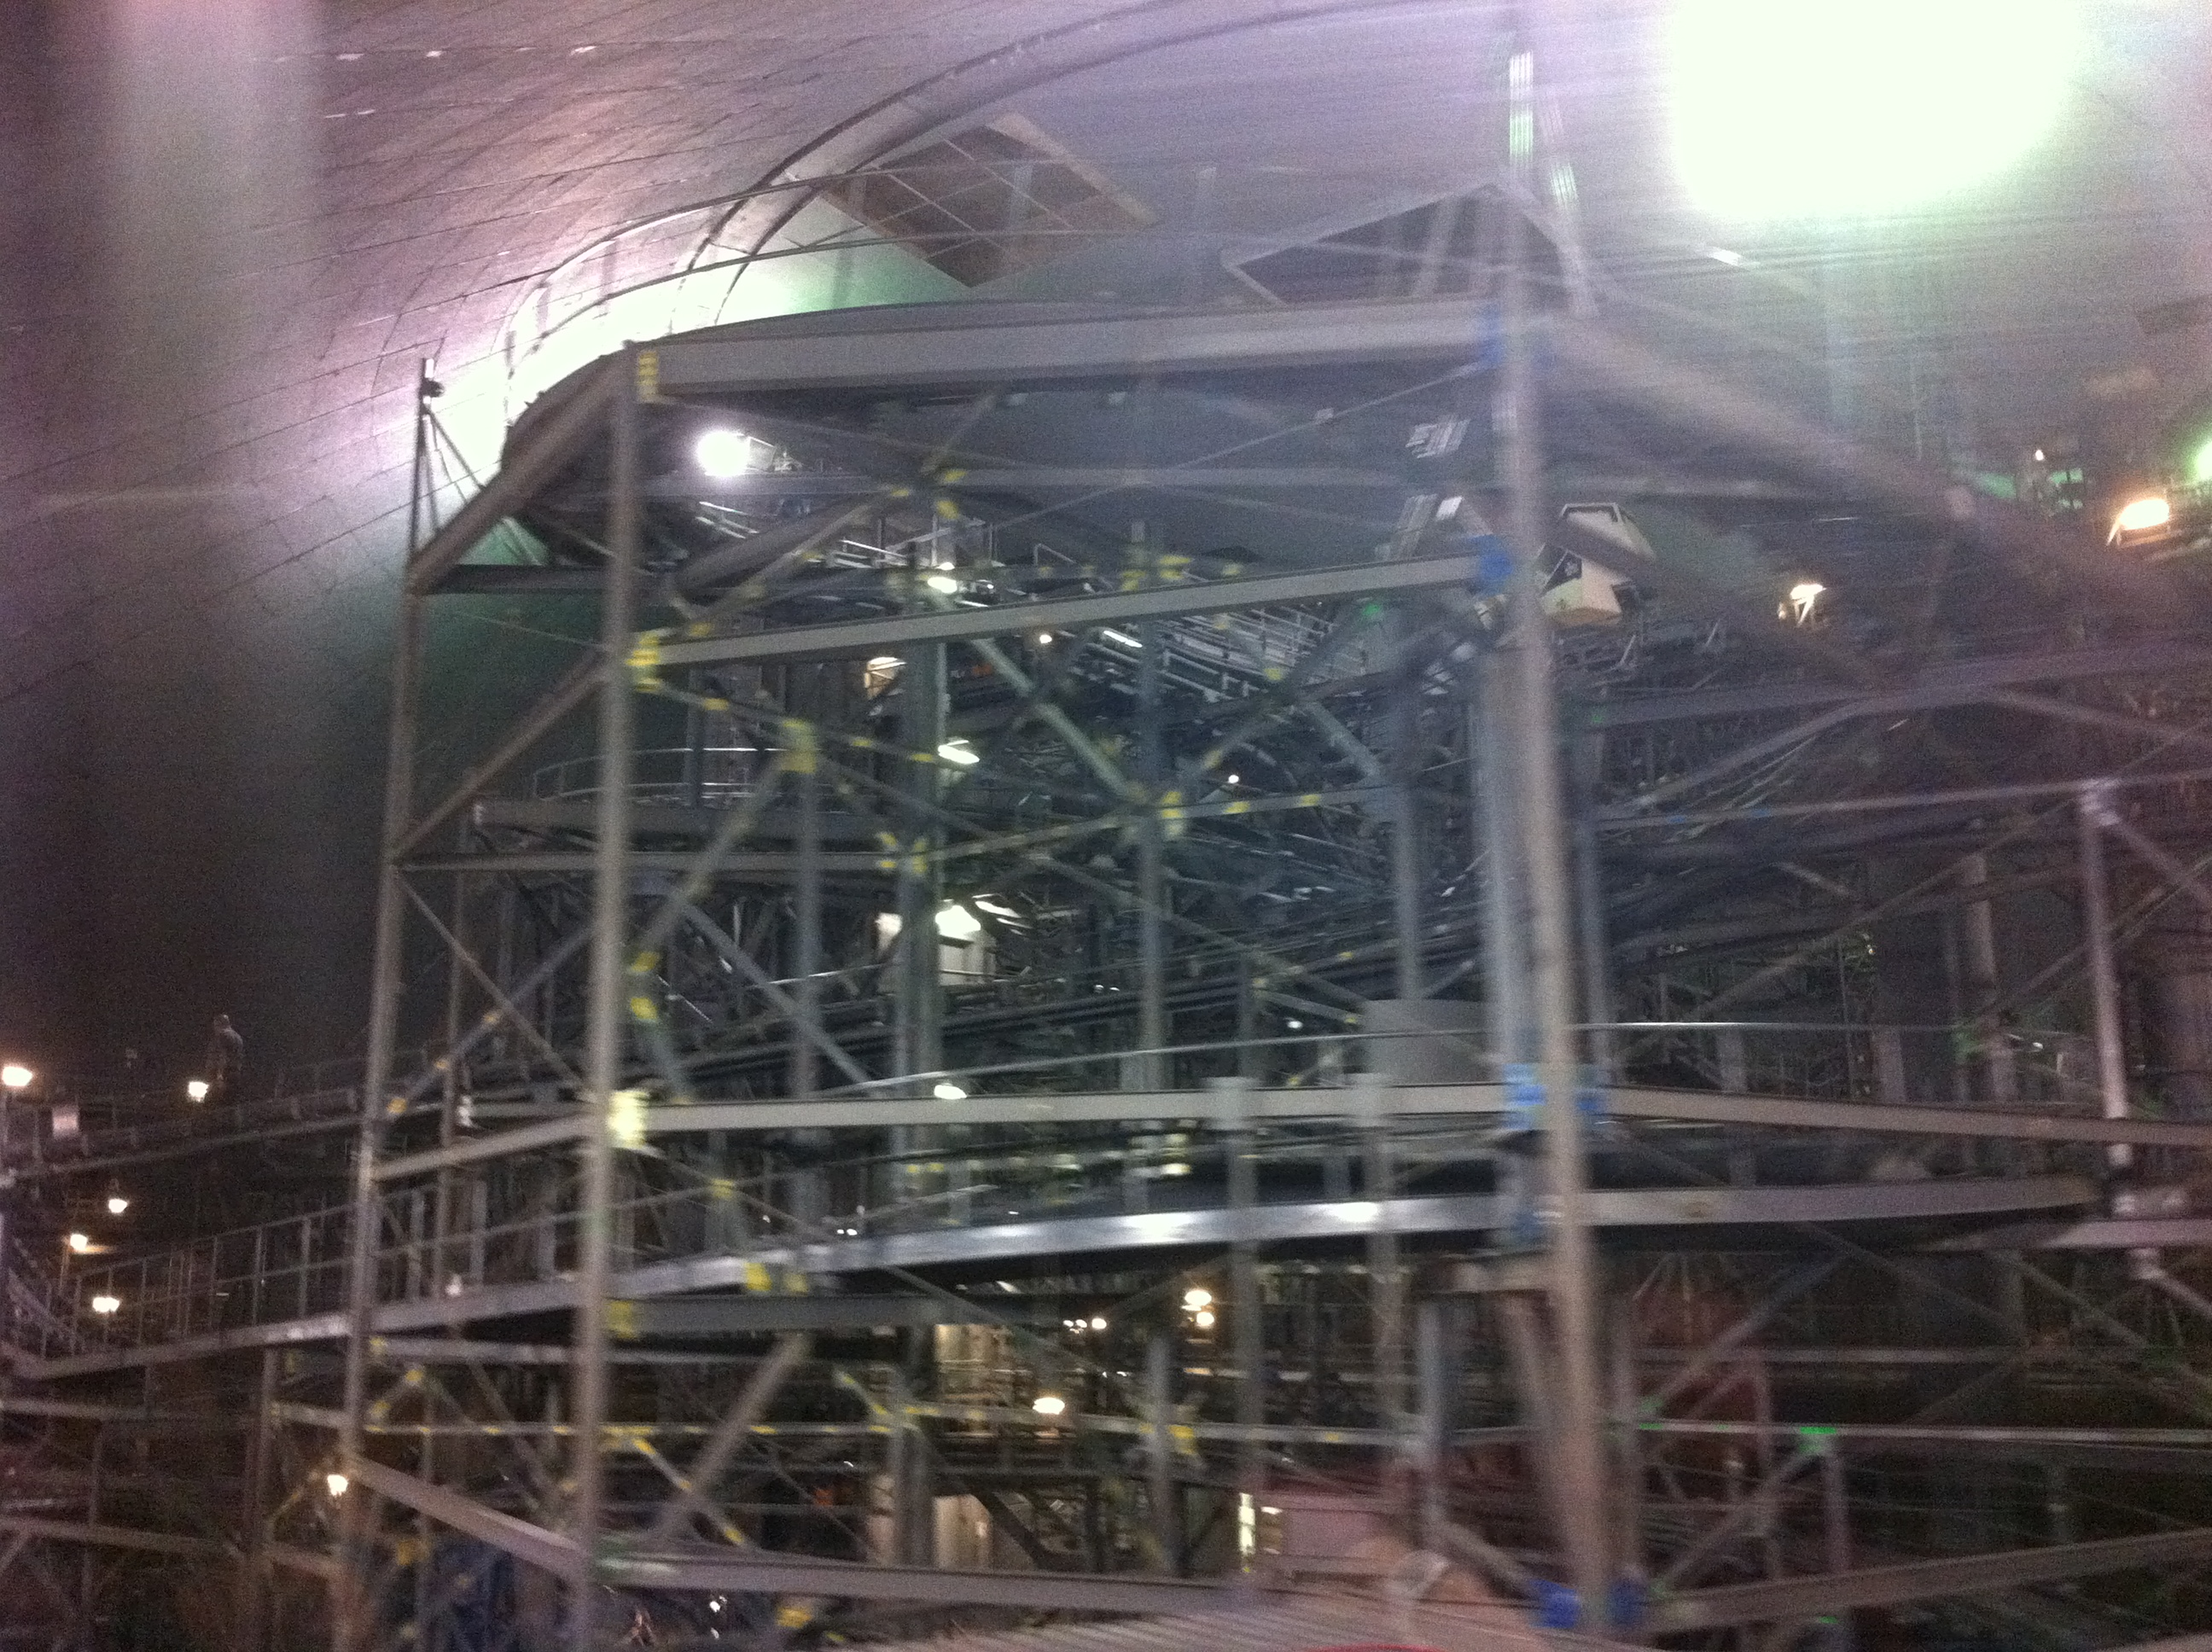 Space Mountain with the lights on in Walt Disney World